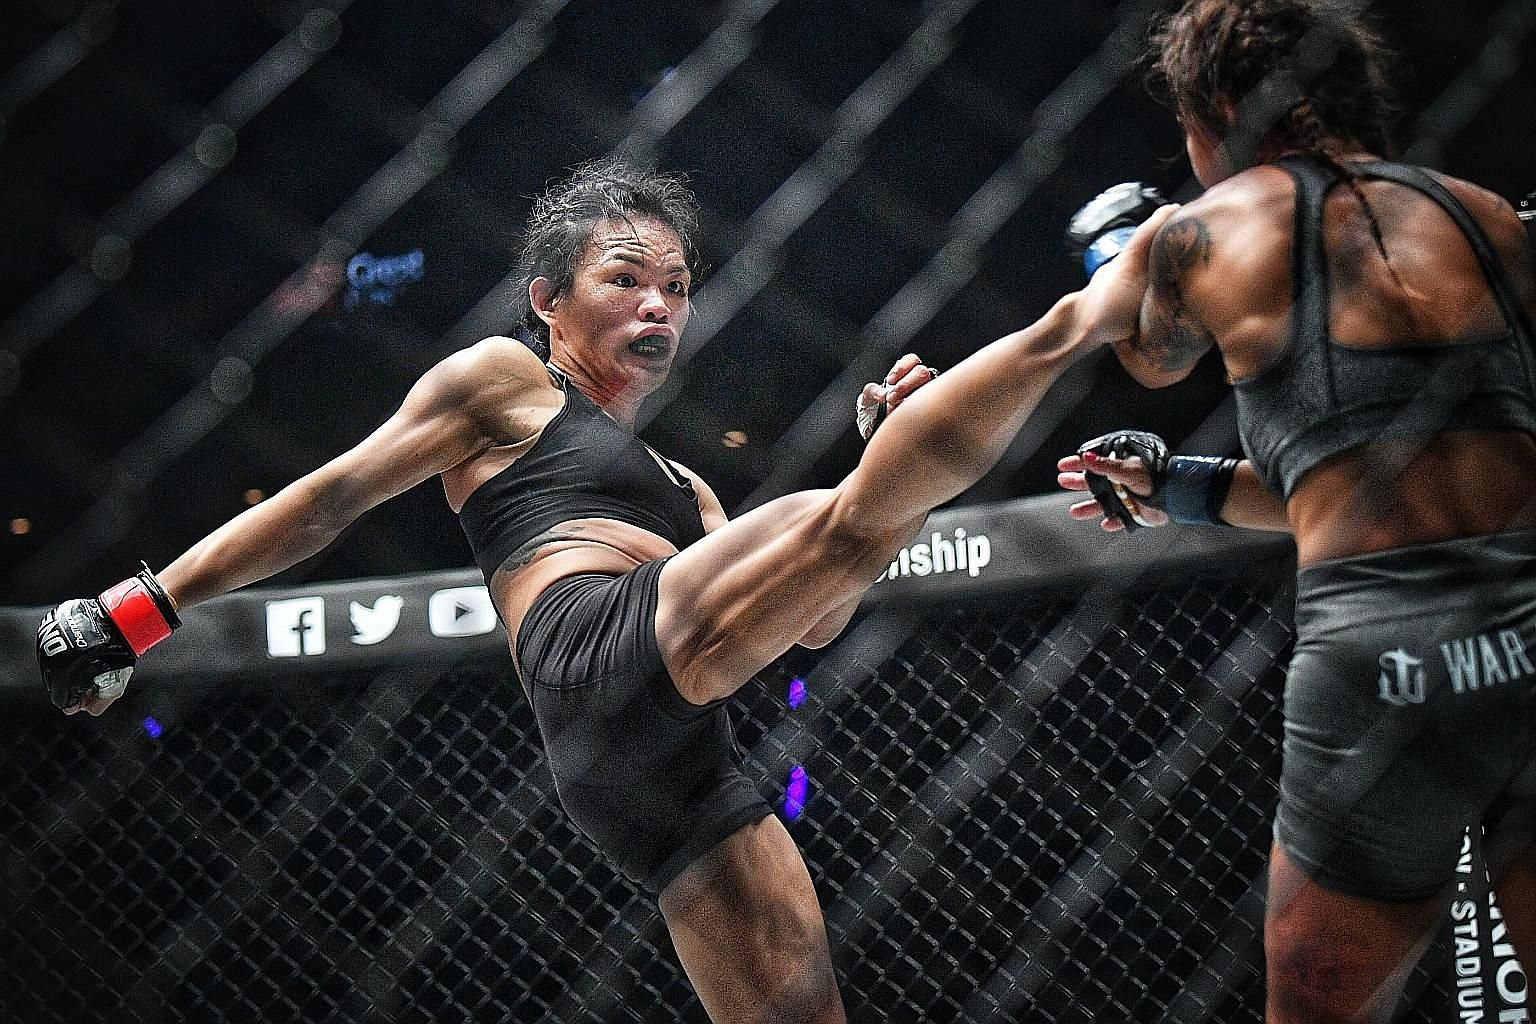 Tiffany Teo notched the biggest win of her career by beating eight-time Brazilian jiu-jitsu world champion Michelle Nicolini via unanimous decision in a strawweight bout in One Championship's Heart of the Lion event at the Singapore Indoor Stadium on